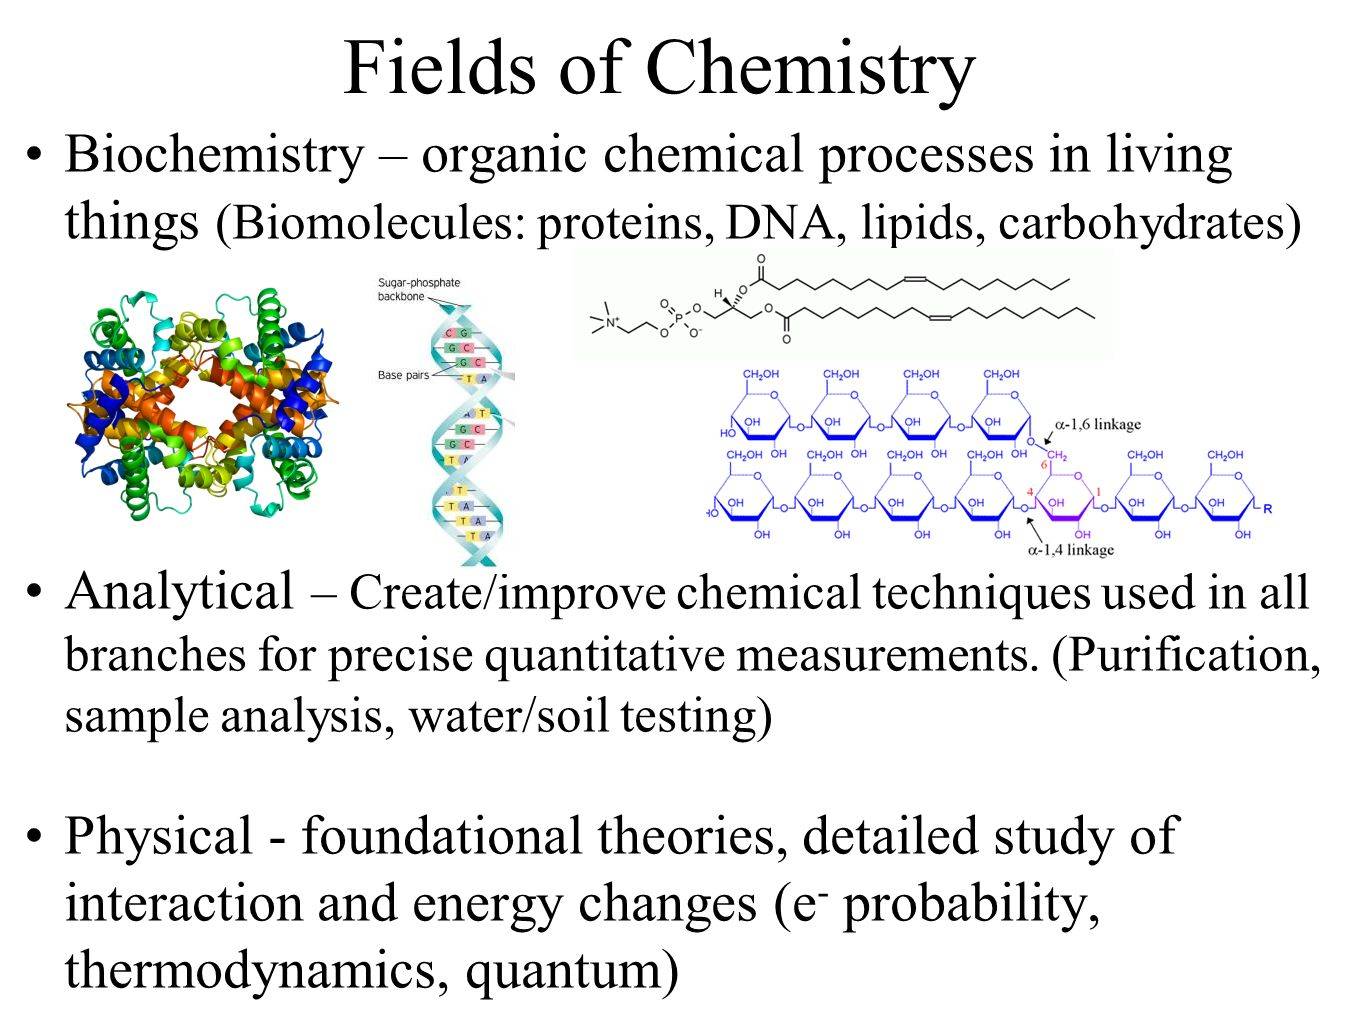 an analysis of the field of chemistry and the mystery of matter Mystery, thriller & crime materials chemistry -materials science is an interdisciplinary field applying the properties of matter to various areas of it is also an important part of forensic engineering and failure analysis nuclear chemistry -nuclear chemistry is the subfield.